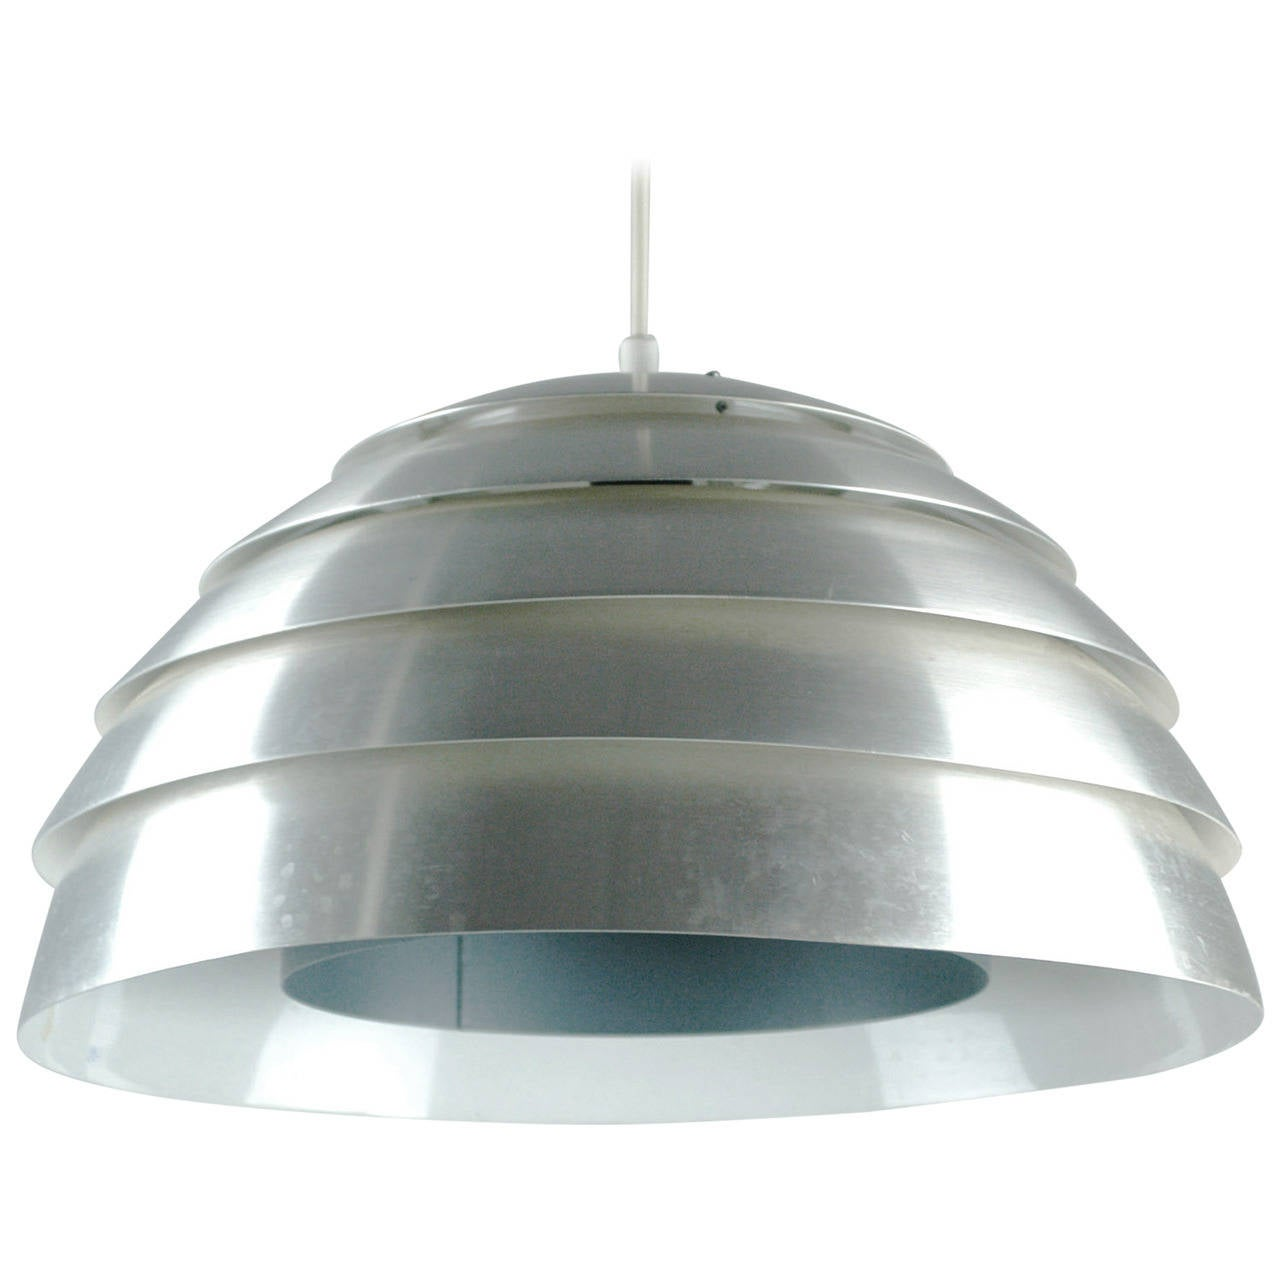 "Scandinavian Modern Ceiling Light ""Dome"" by Hans Agne Jakobsson"